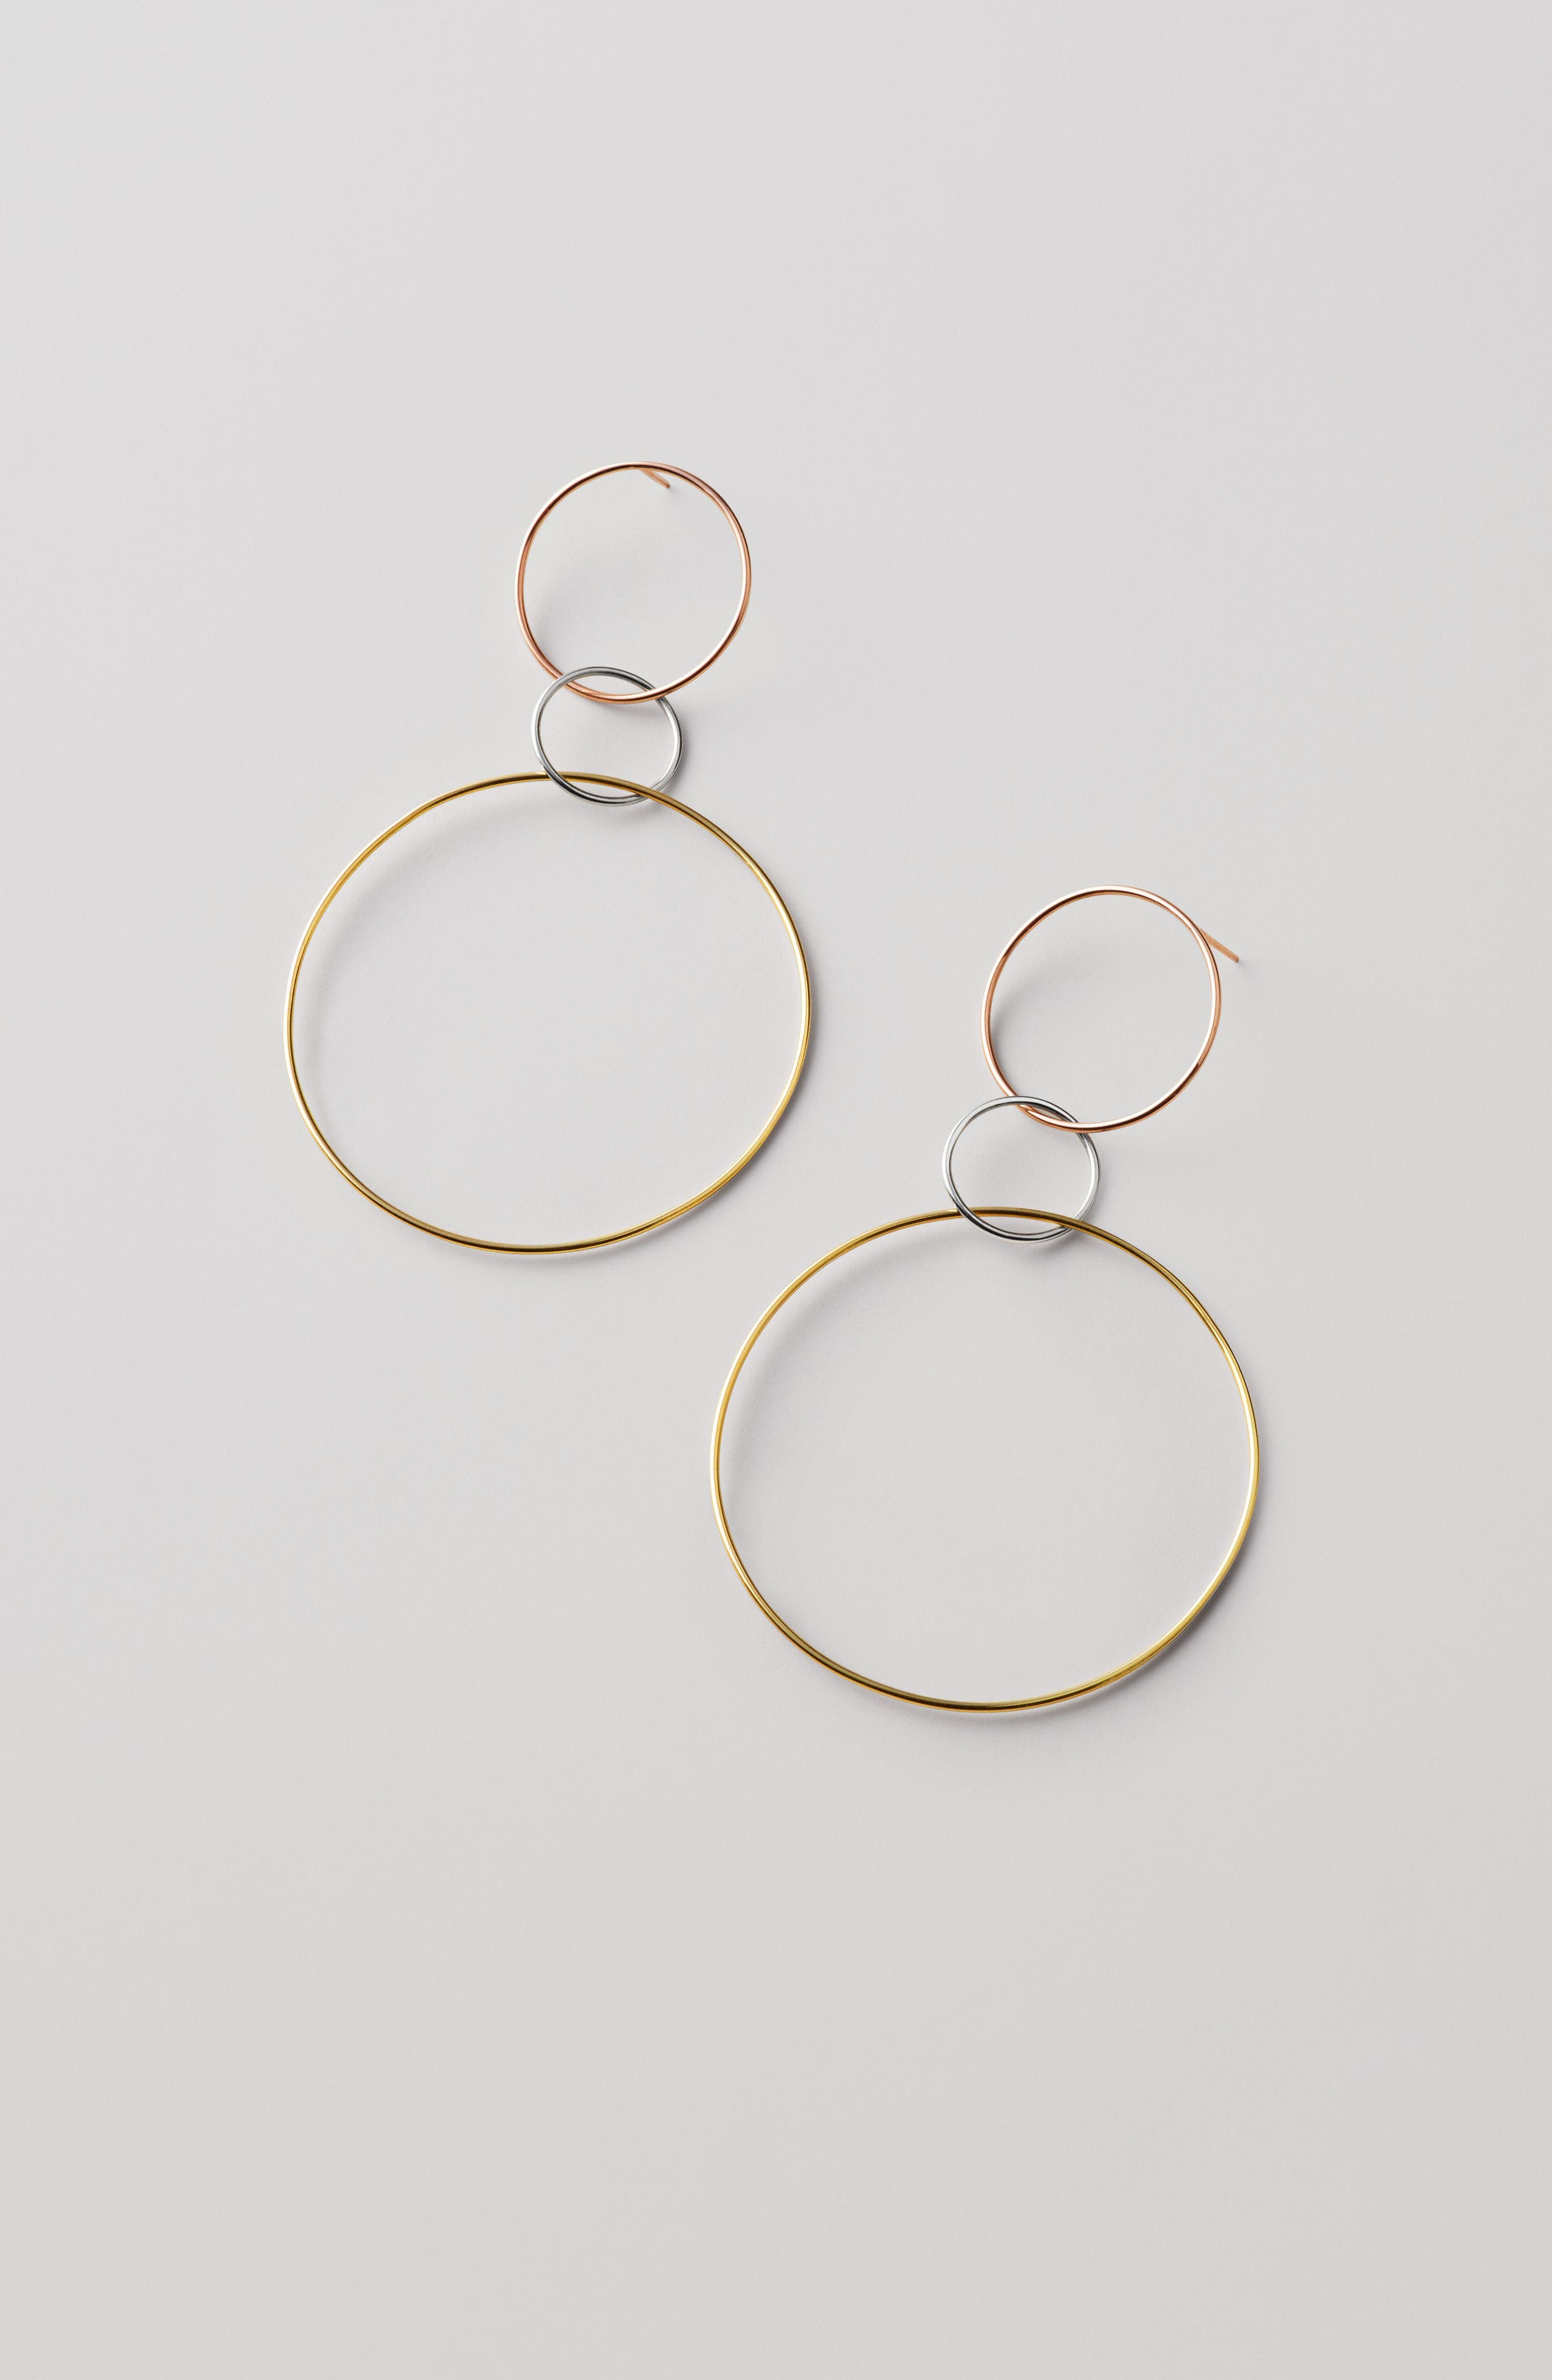 Tri-Tone Three Hoop Wire Drop Earrings,                             Alternate thumbnail 4, color,                             THREE TONE MIX